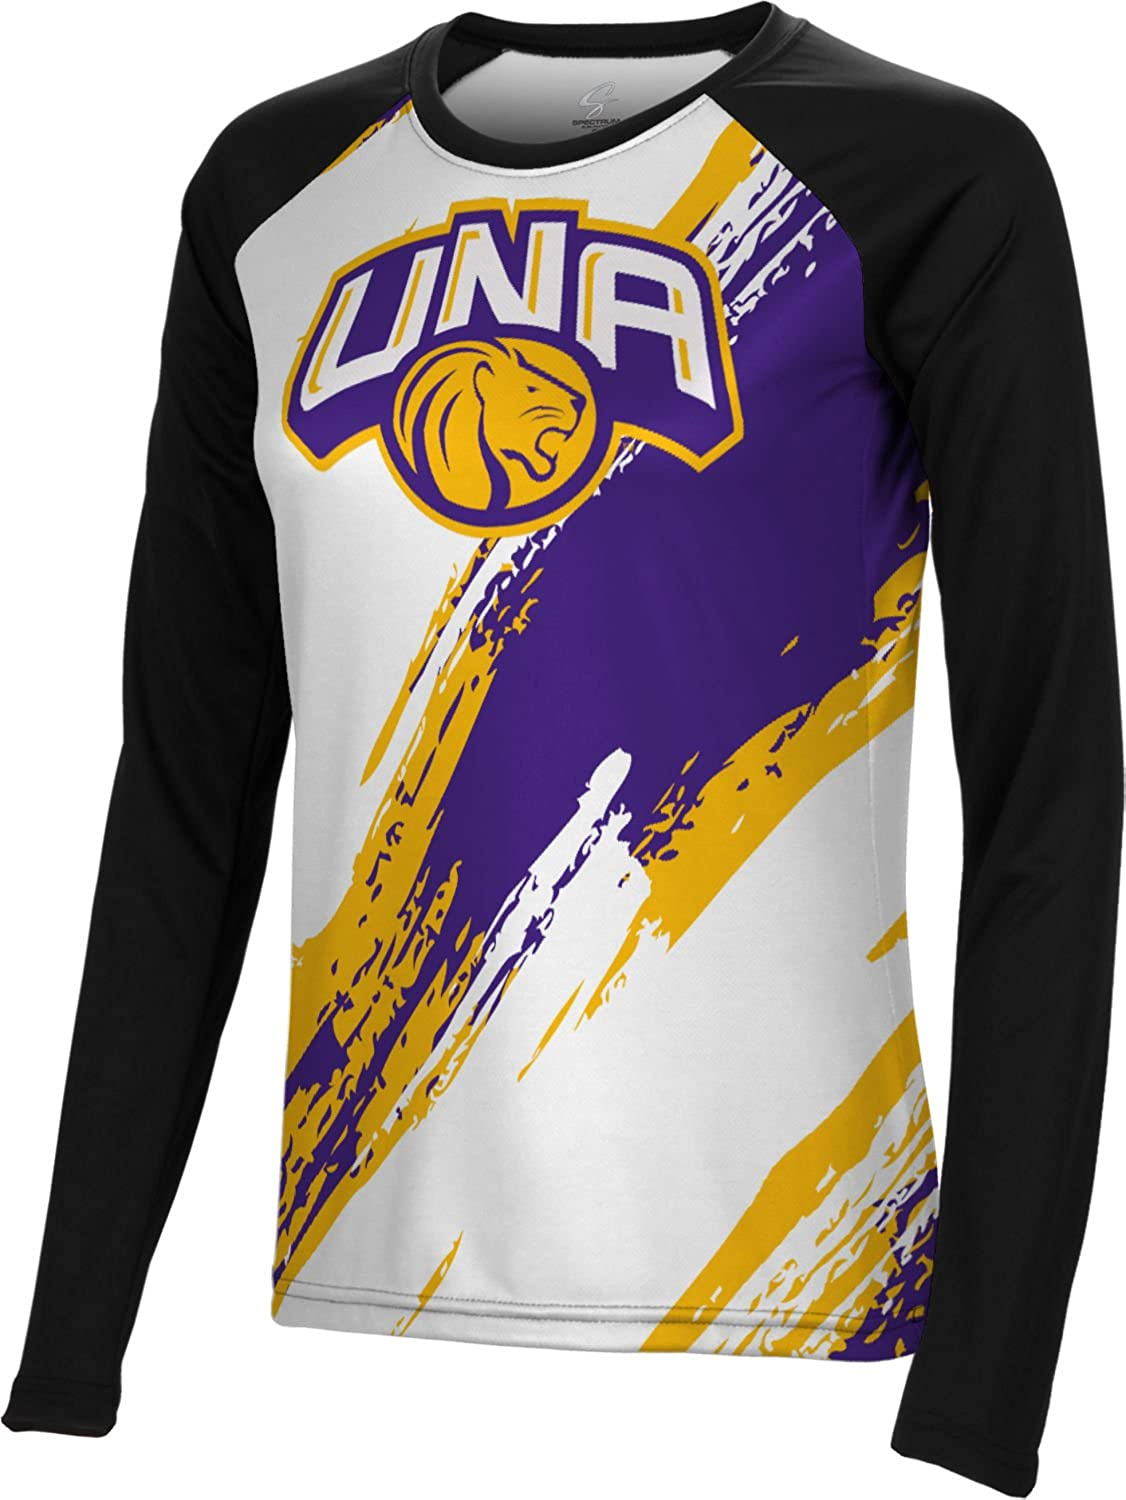 Spectrum Sublimation Women's University of North Alabama Scratch Long Sleeve